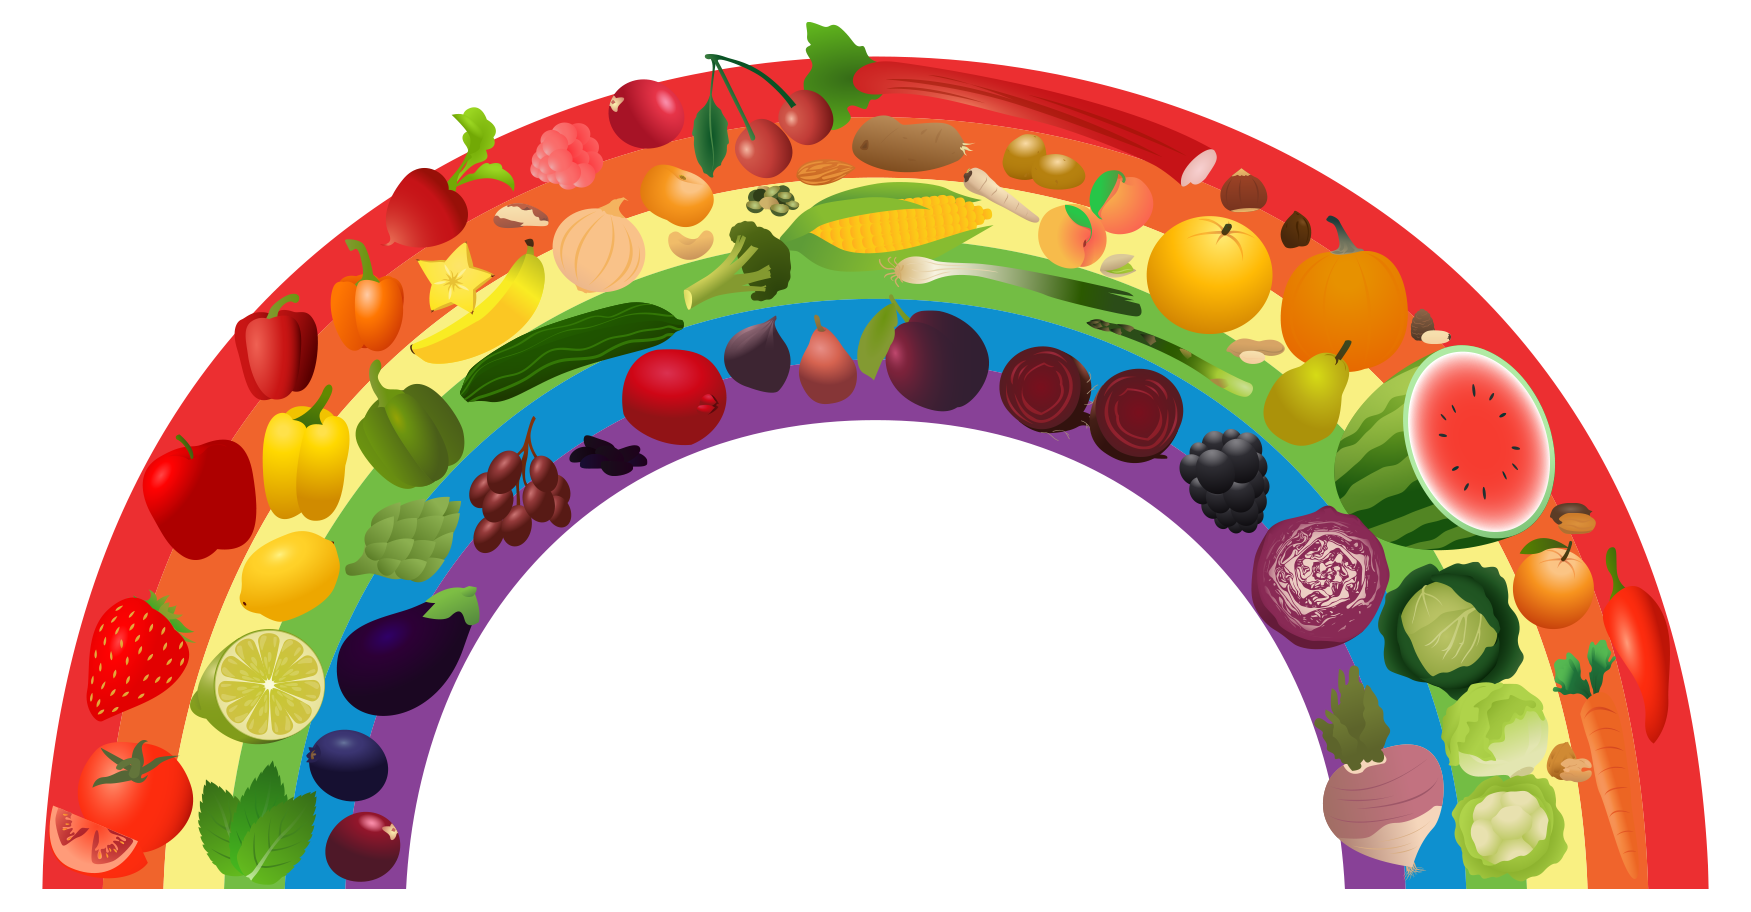 View Rainbow_1.png Clipart - Free Nutrition and Healthy Food Clipart